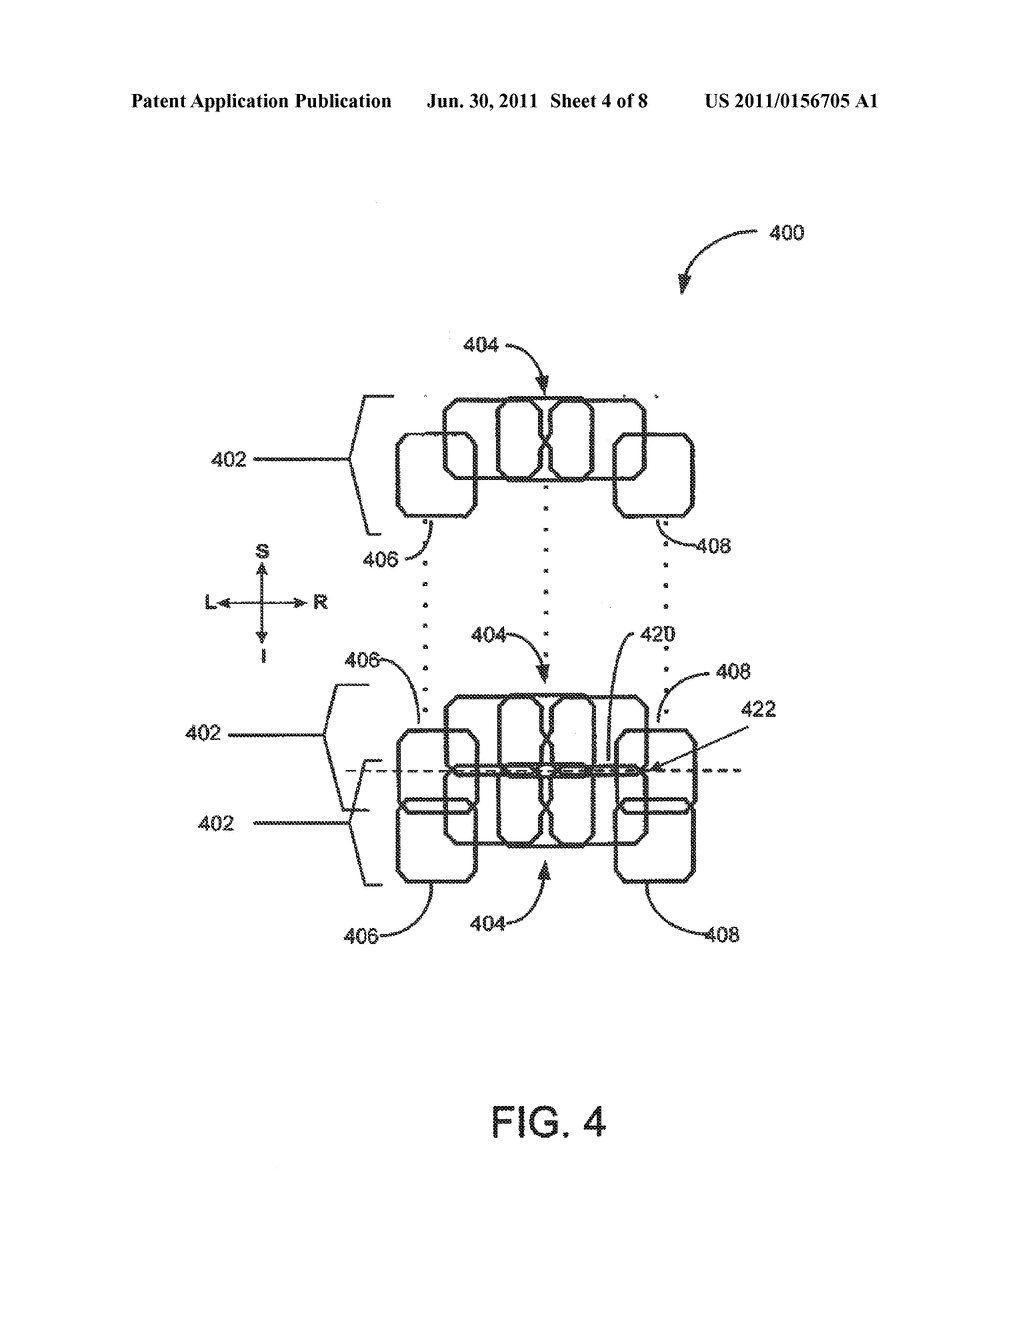 Quadrature And Linear Rf Coil Array For Mri Of Human Spine And Torso